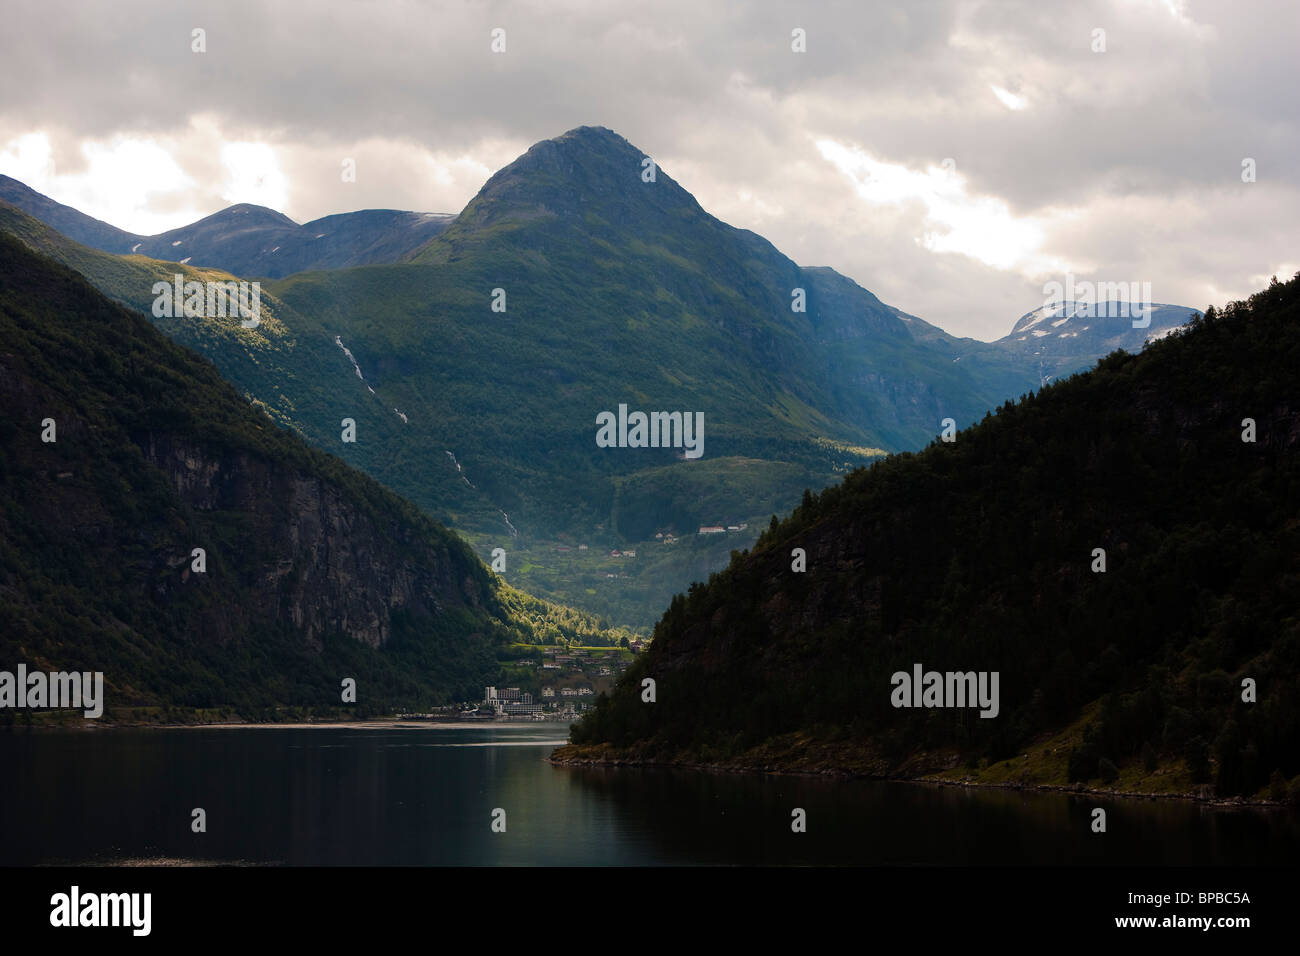 Vinsaashorn Towers above the town of  Geiranger Norway Grindalseter - Stock Image